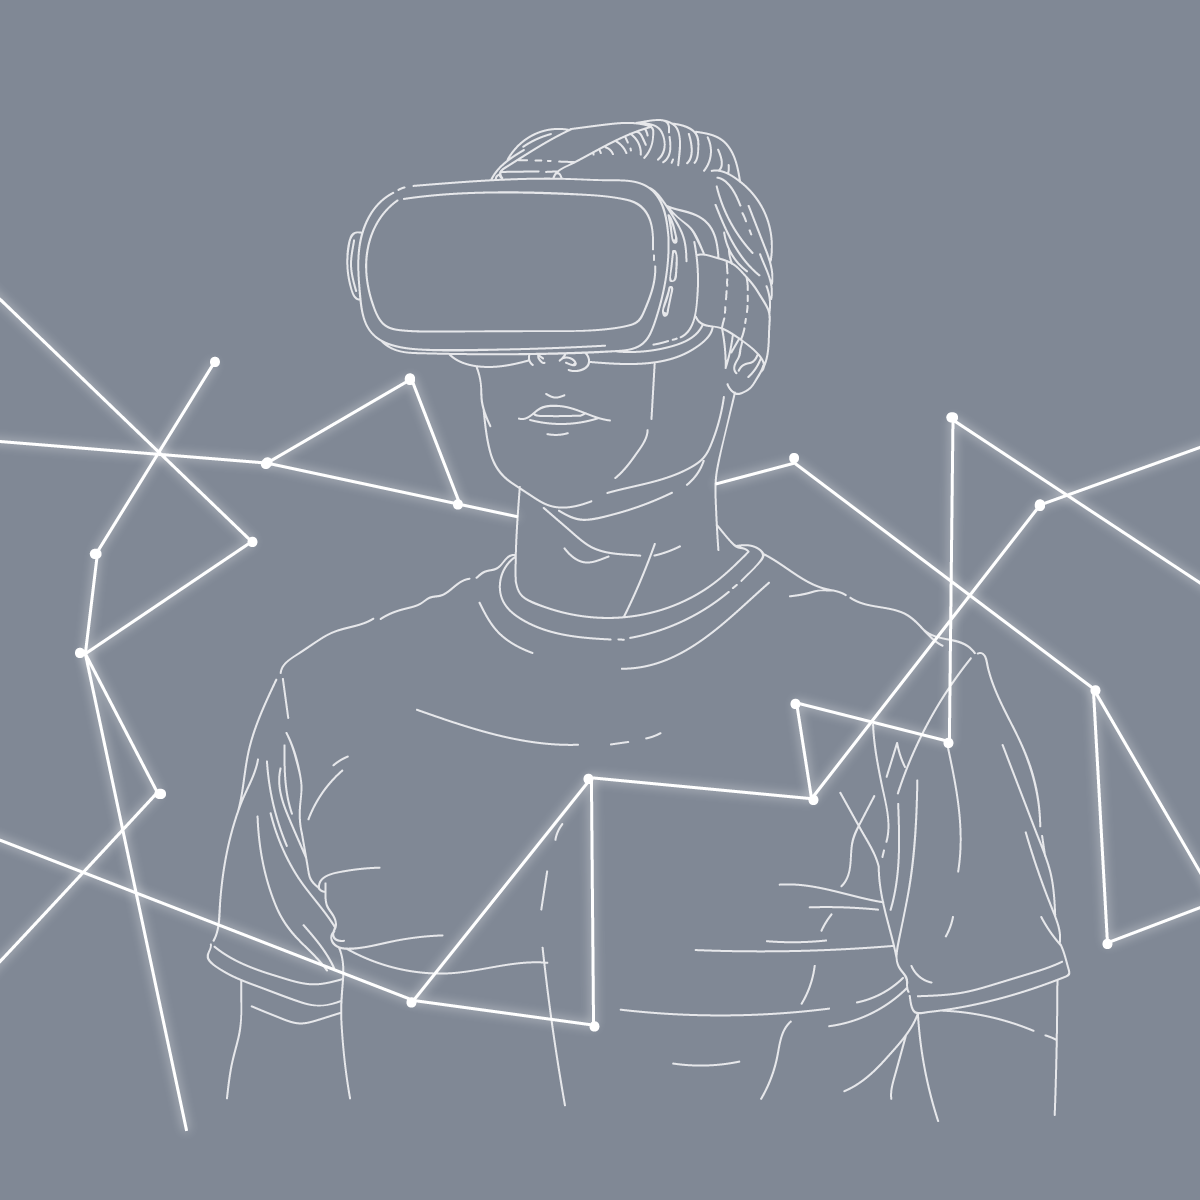 Boy with virtual reality headset illustration